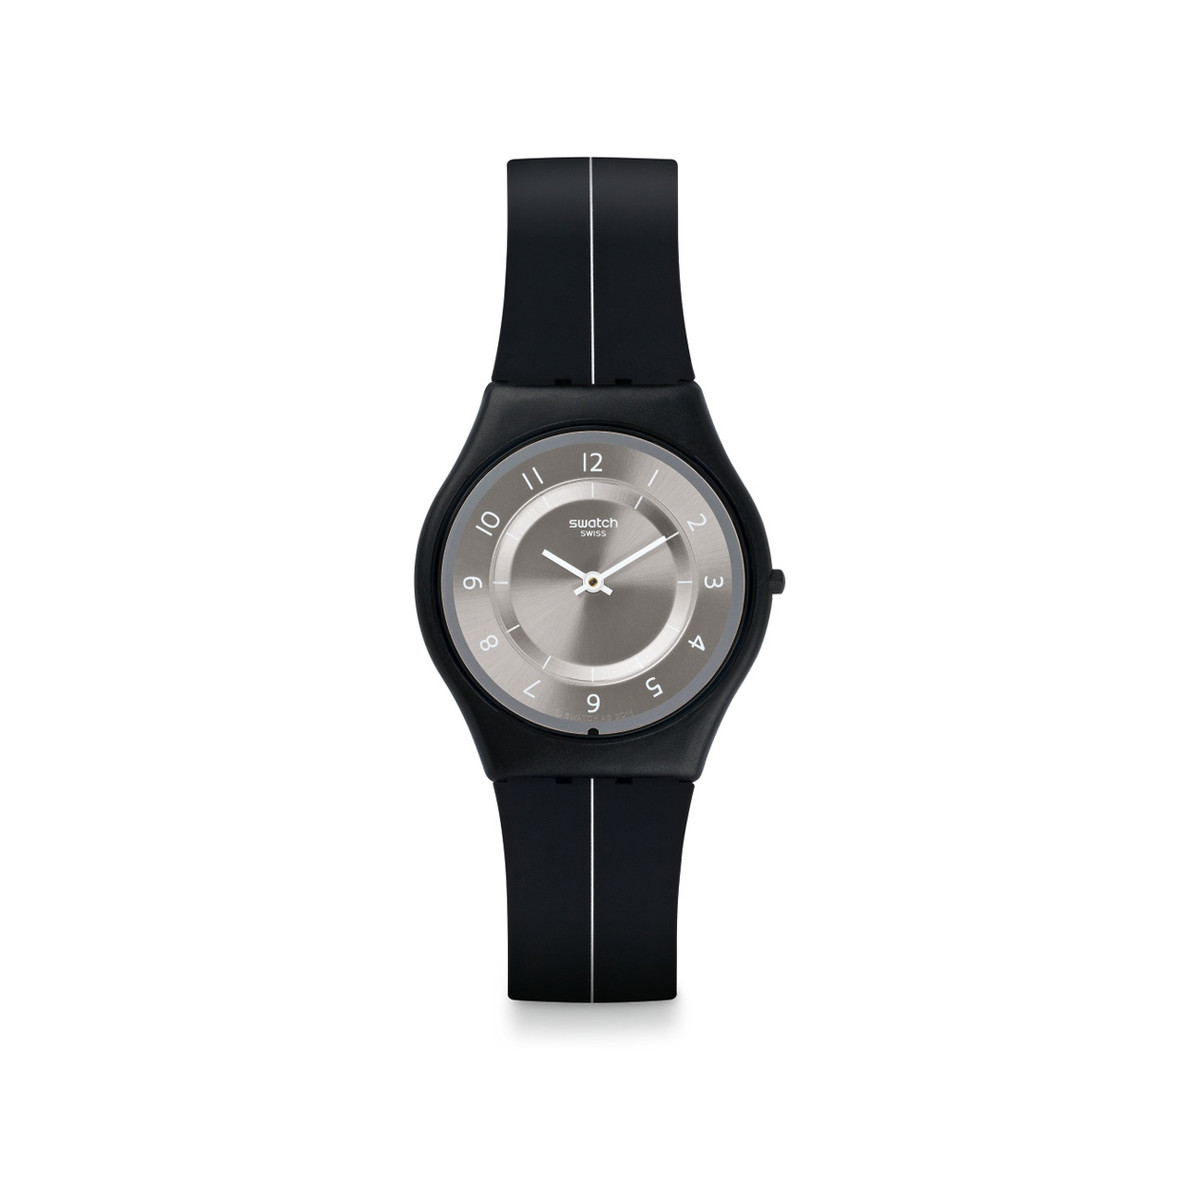 Montre Swatch my silver black mixte silicone noir